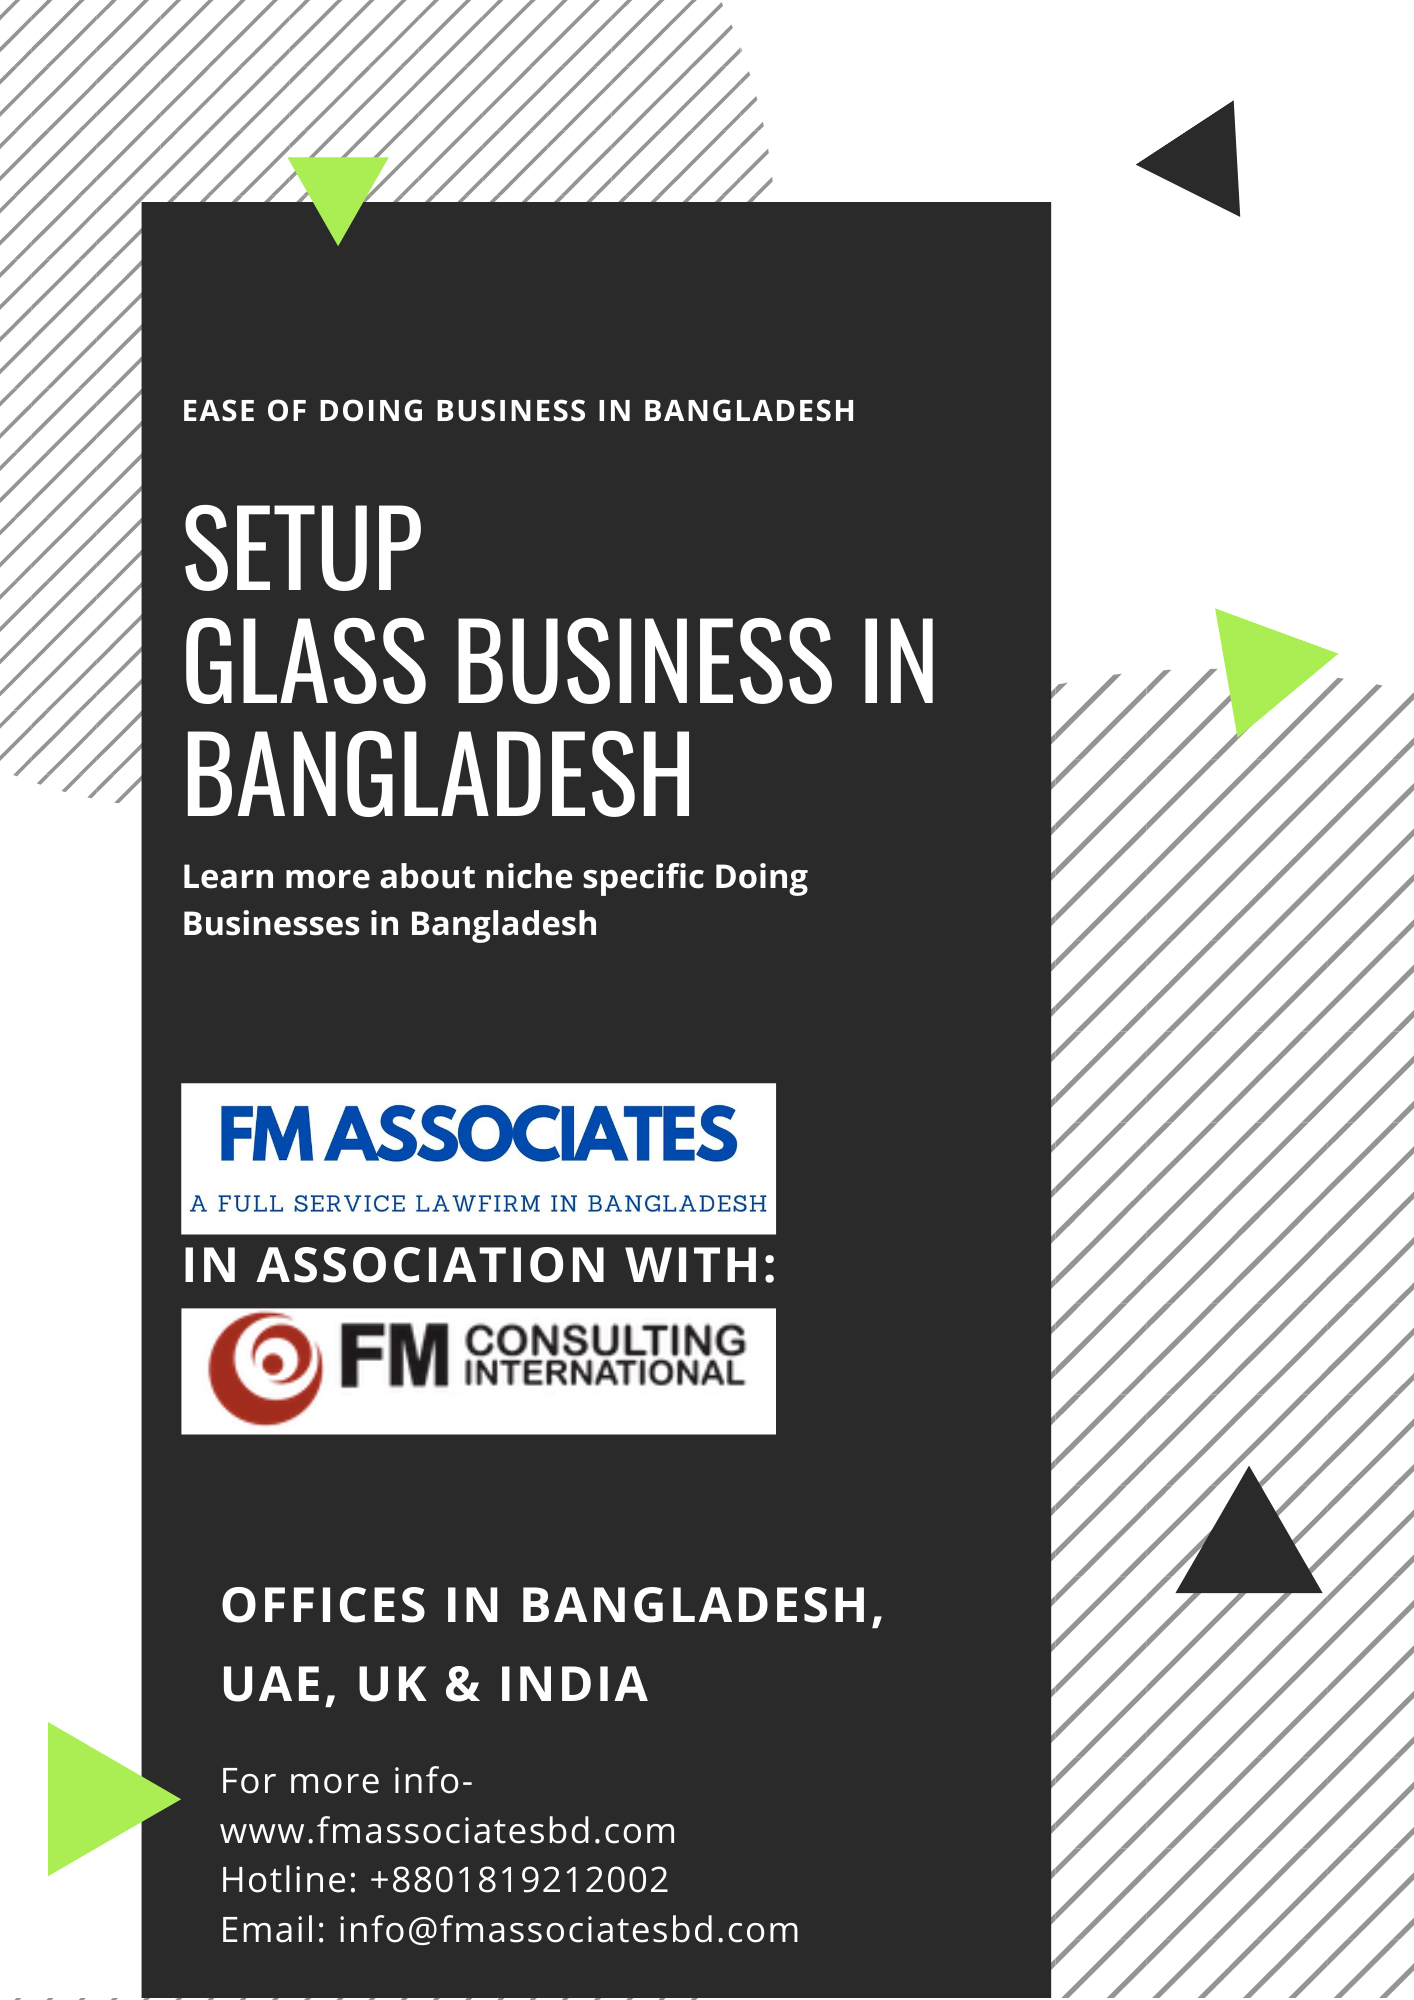 How to Setup Glass Business in Bangladesh